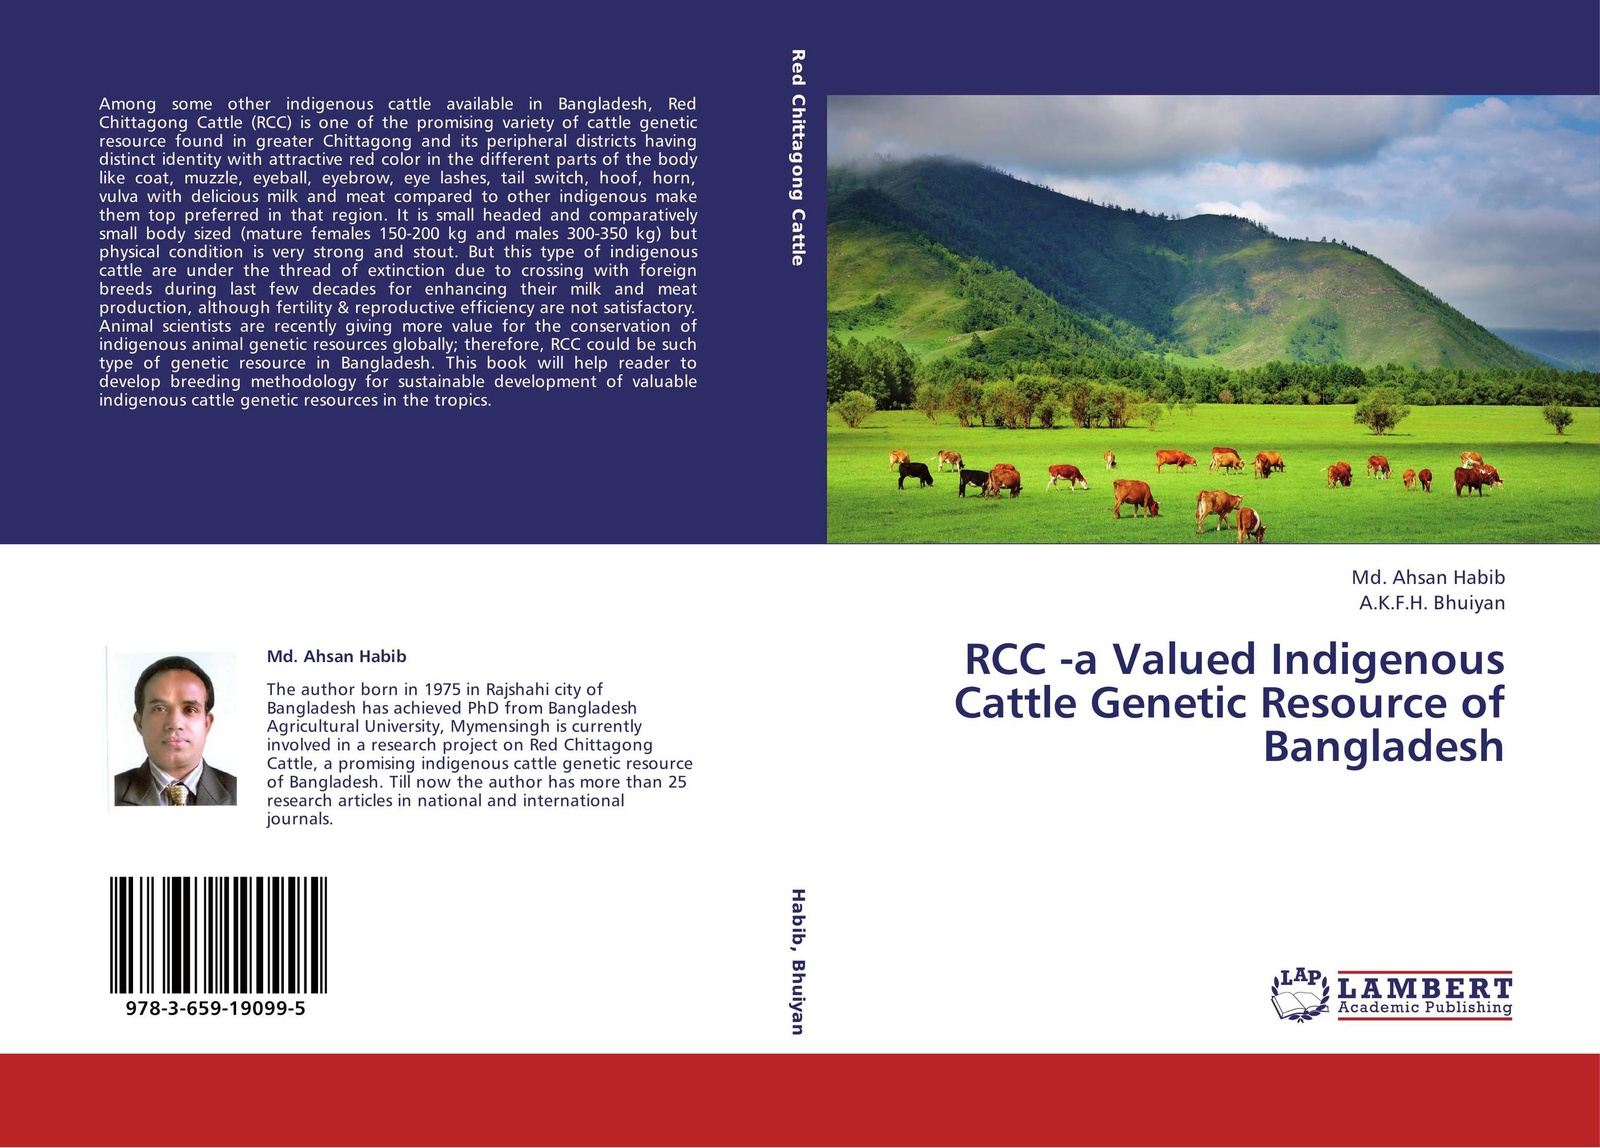 Md. Ahsan Habib and A.K.F.H. Bhuiyan RCC -a Valued Indigenous Cattle Genetic Resource of Bangladesh aging problems of indigenous people of bangladesh